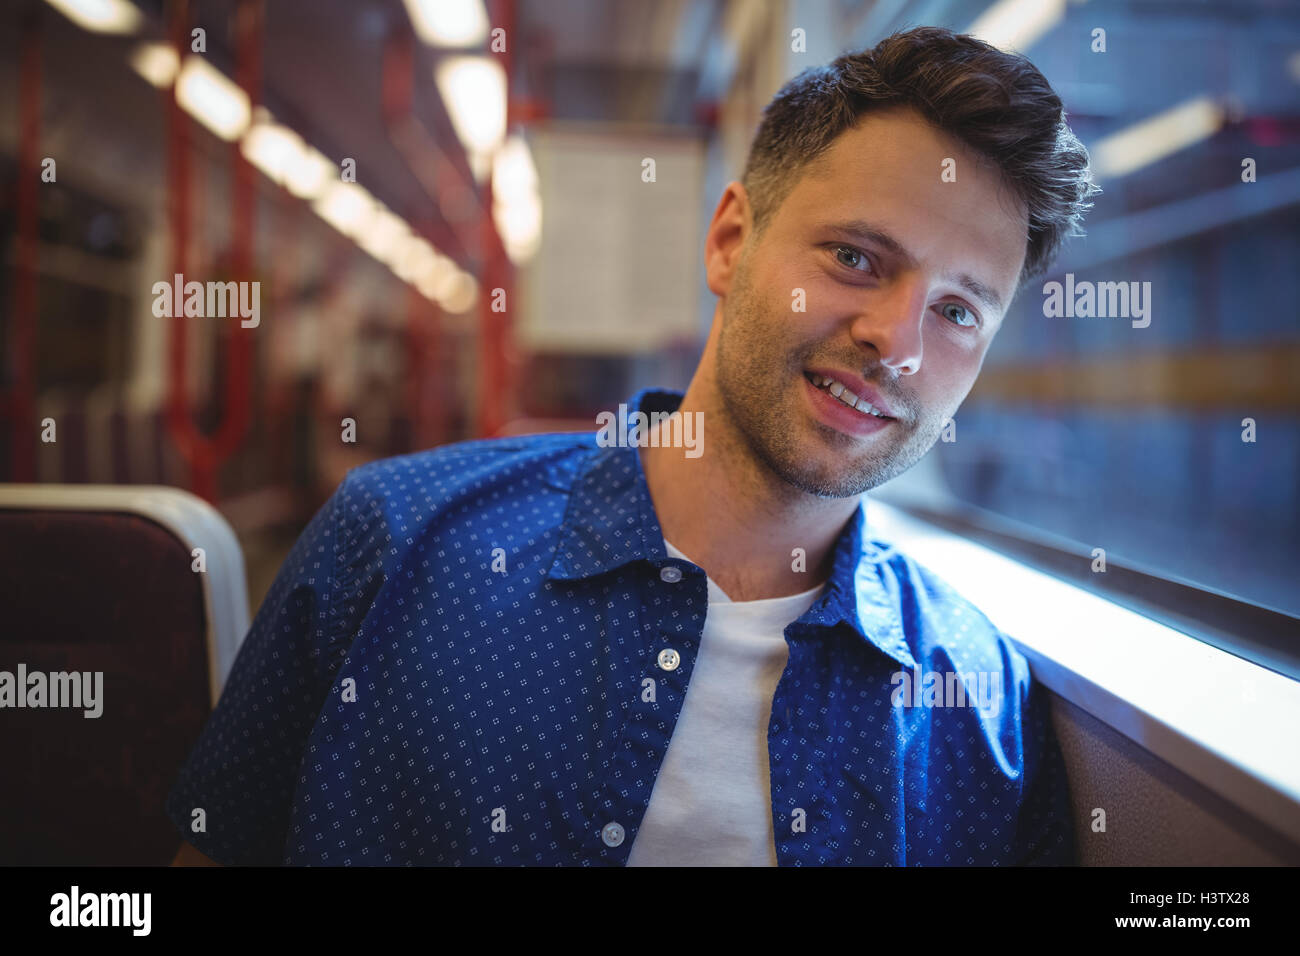 Handsome man looking through window - Stock Image